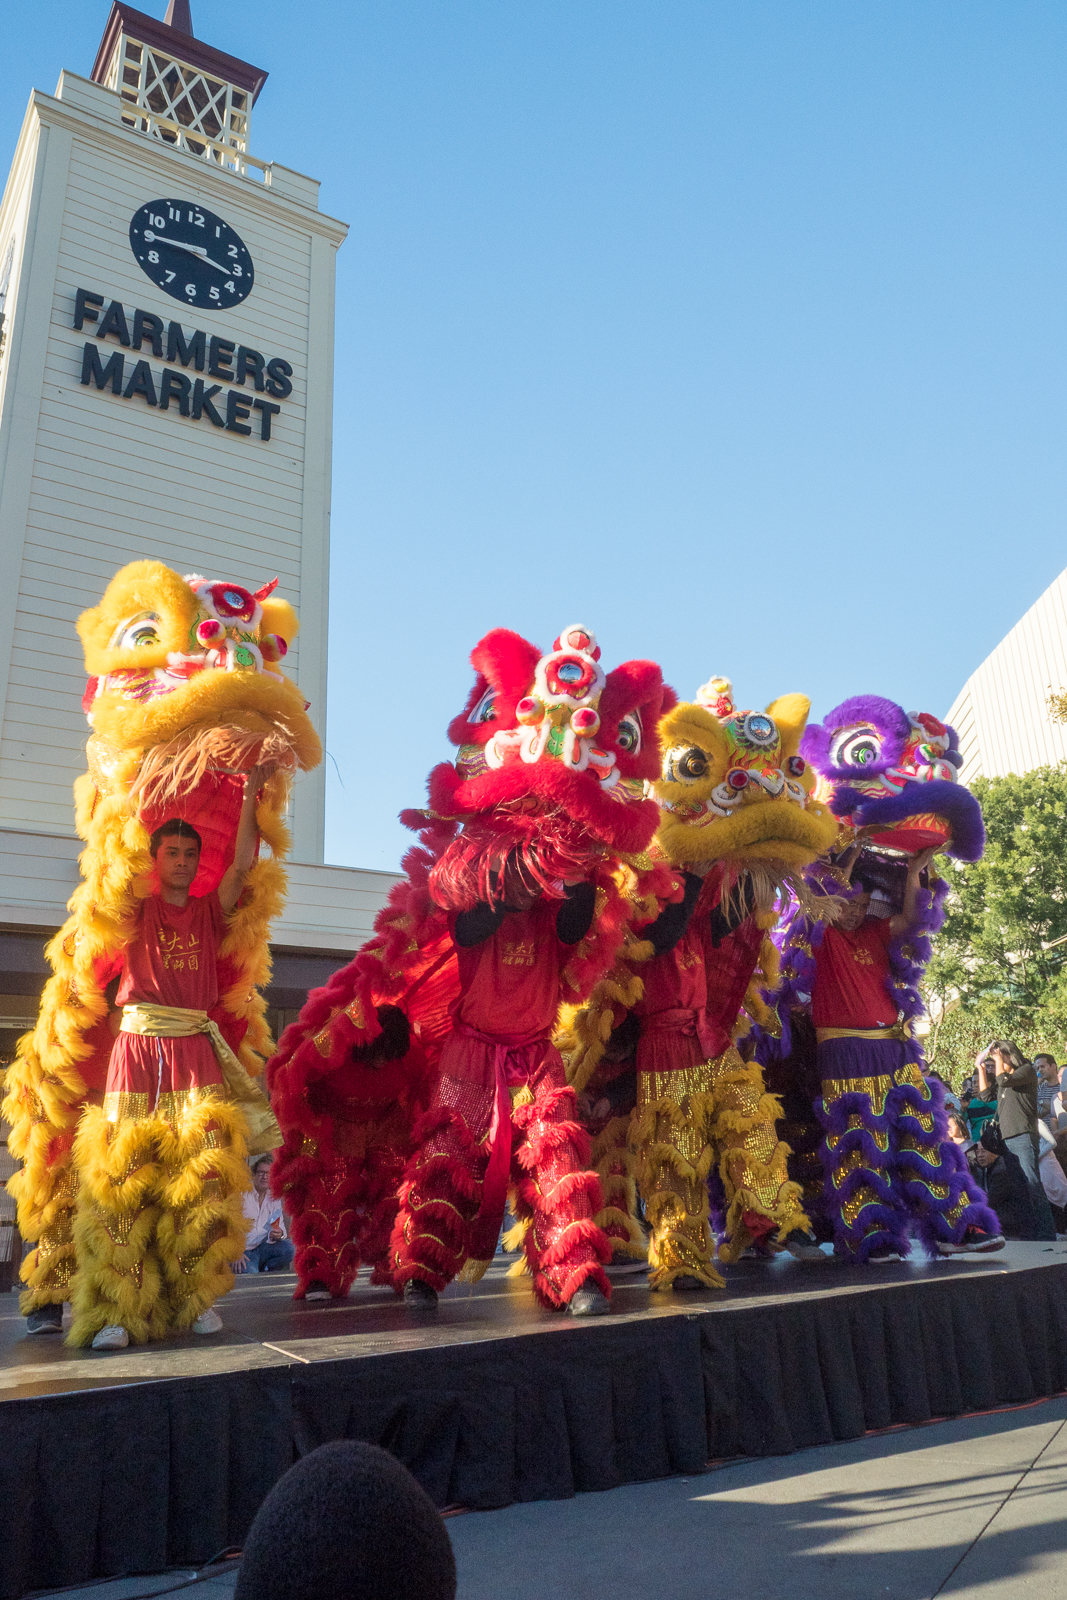 Lunar New Year Celebration at The Original Farmers Market